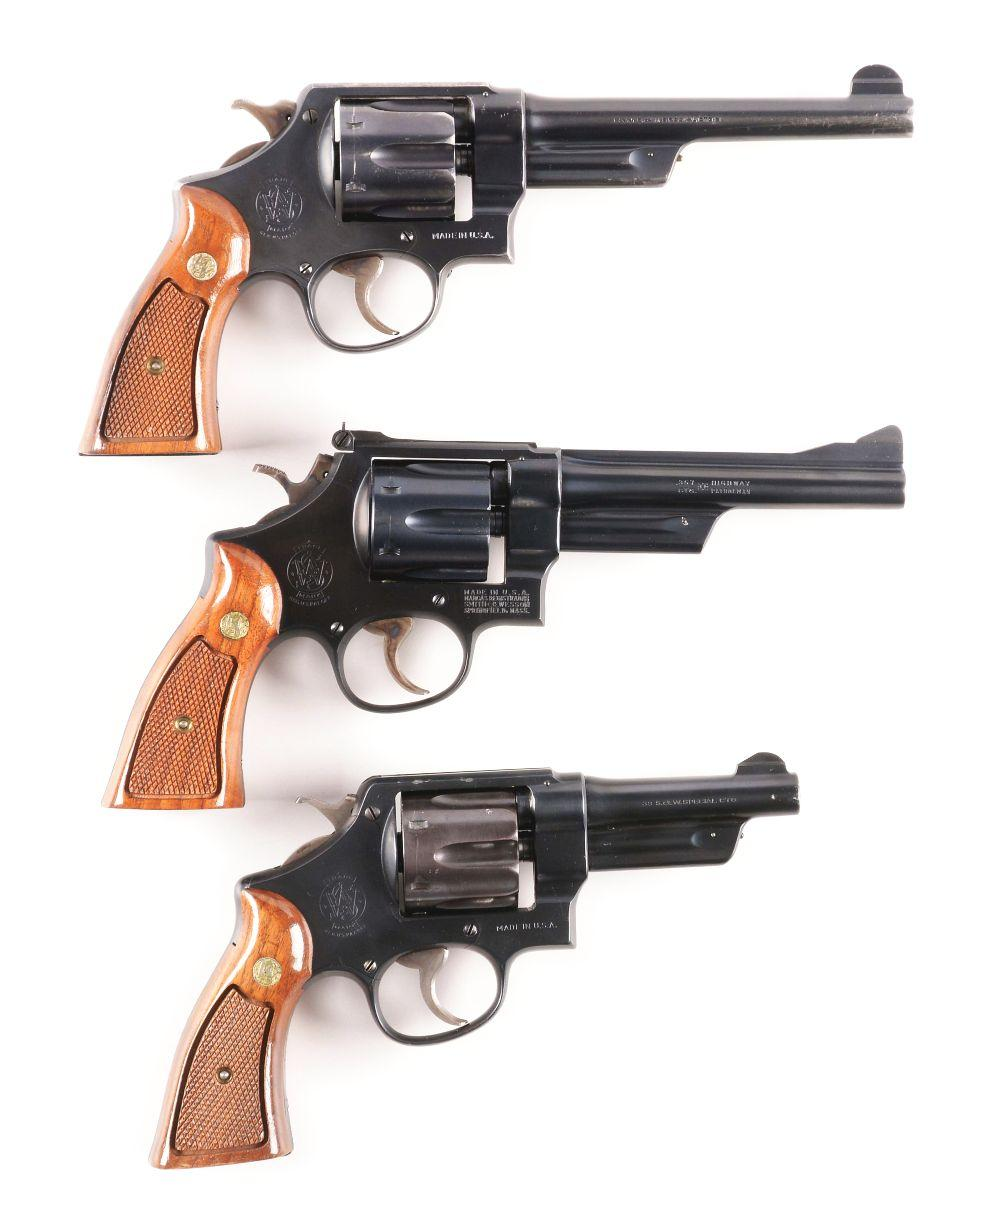 (M) LOT OF 3: COLLECTIBLE SMITH & WESSON N-FRAME DOUBLE ACTION REVOLVERS.